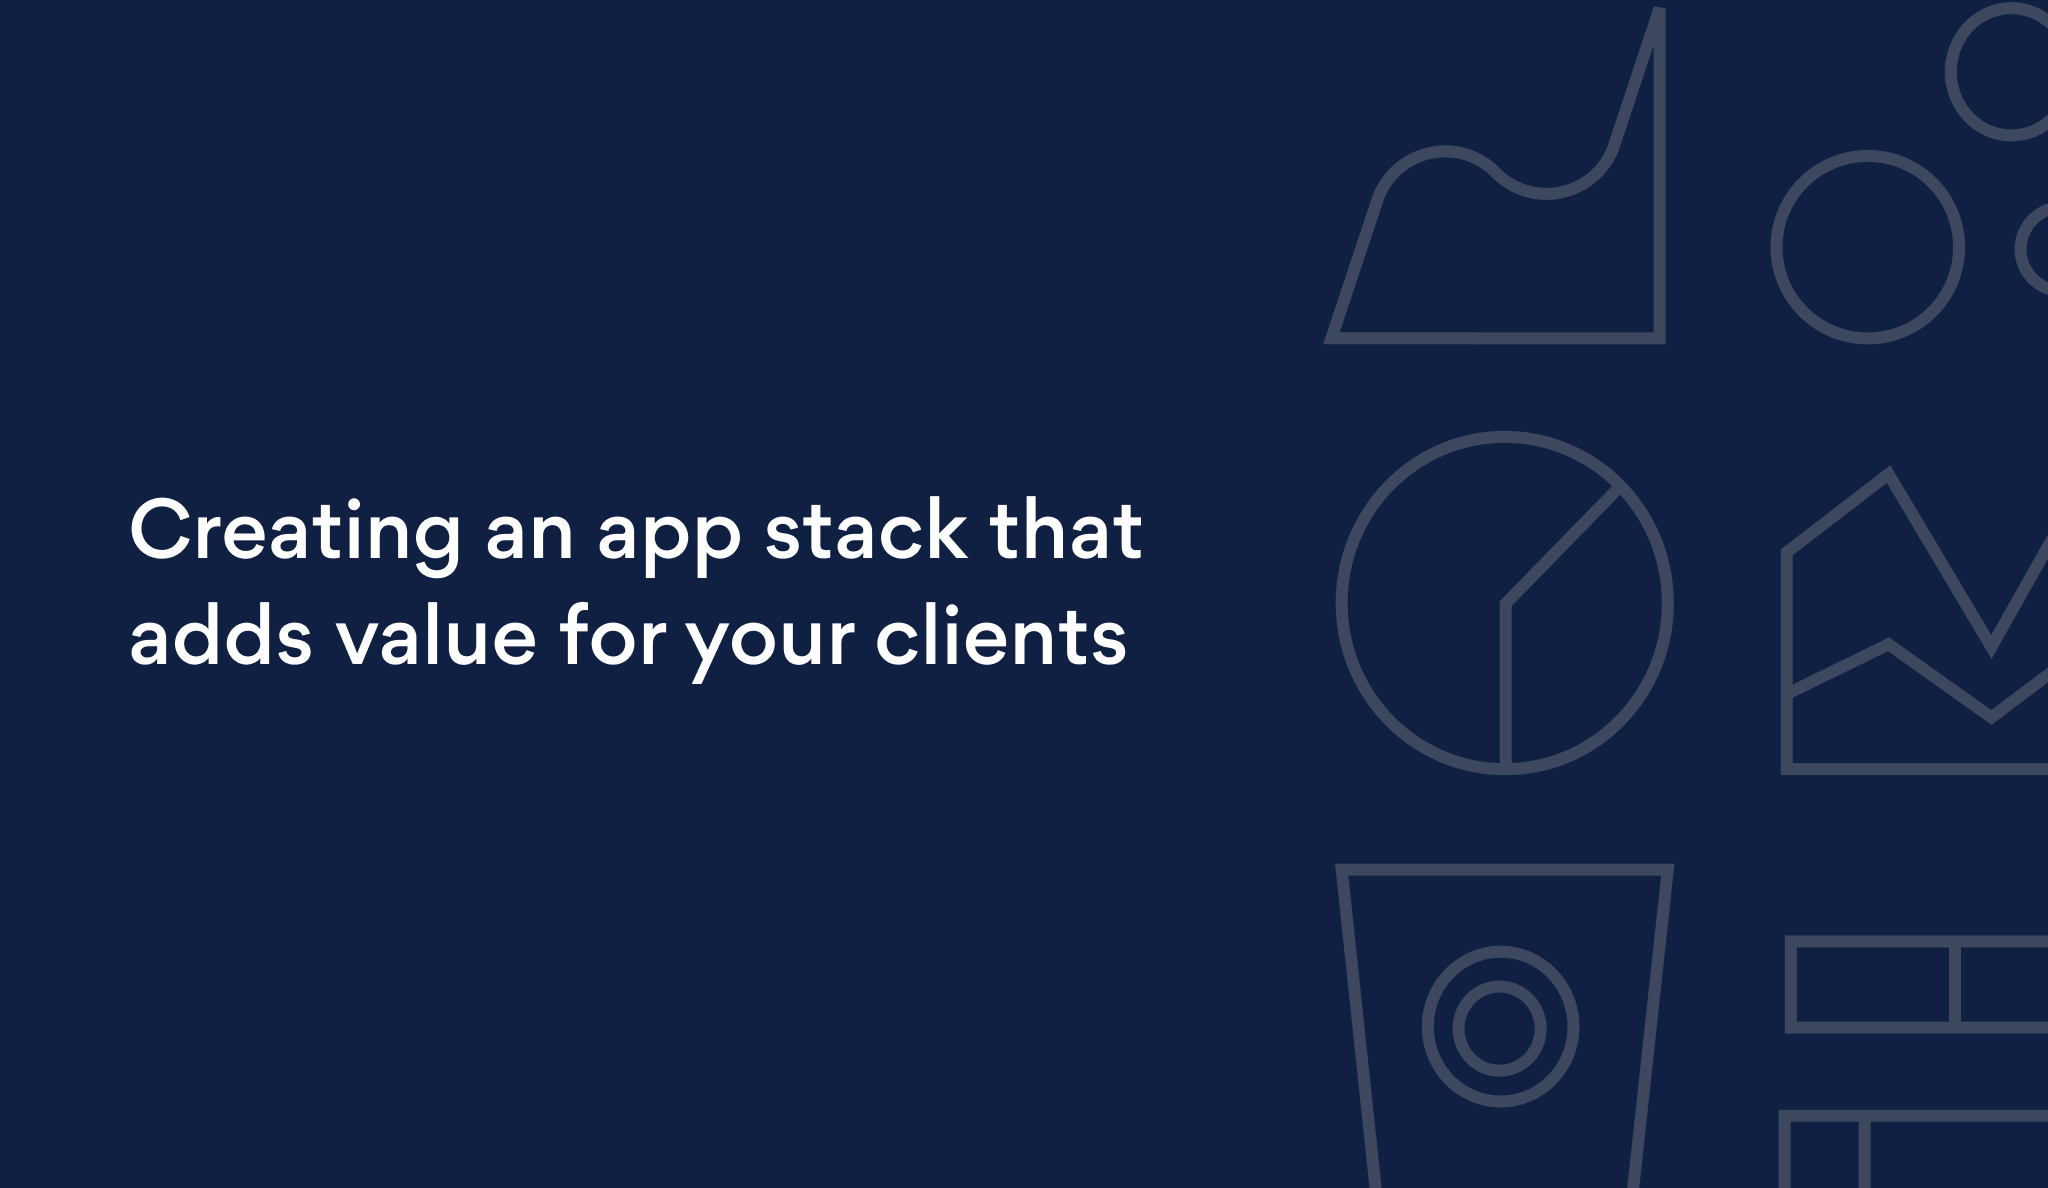 Creating an app stack that adds value for your clients